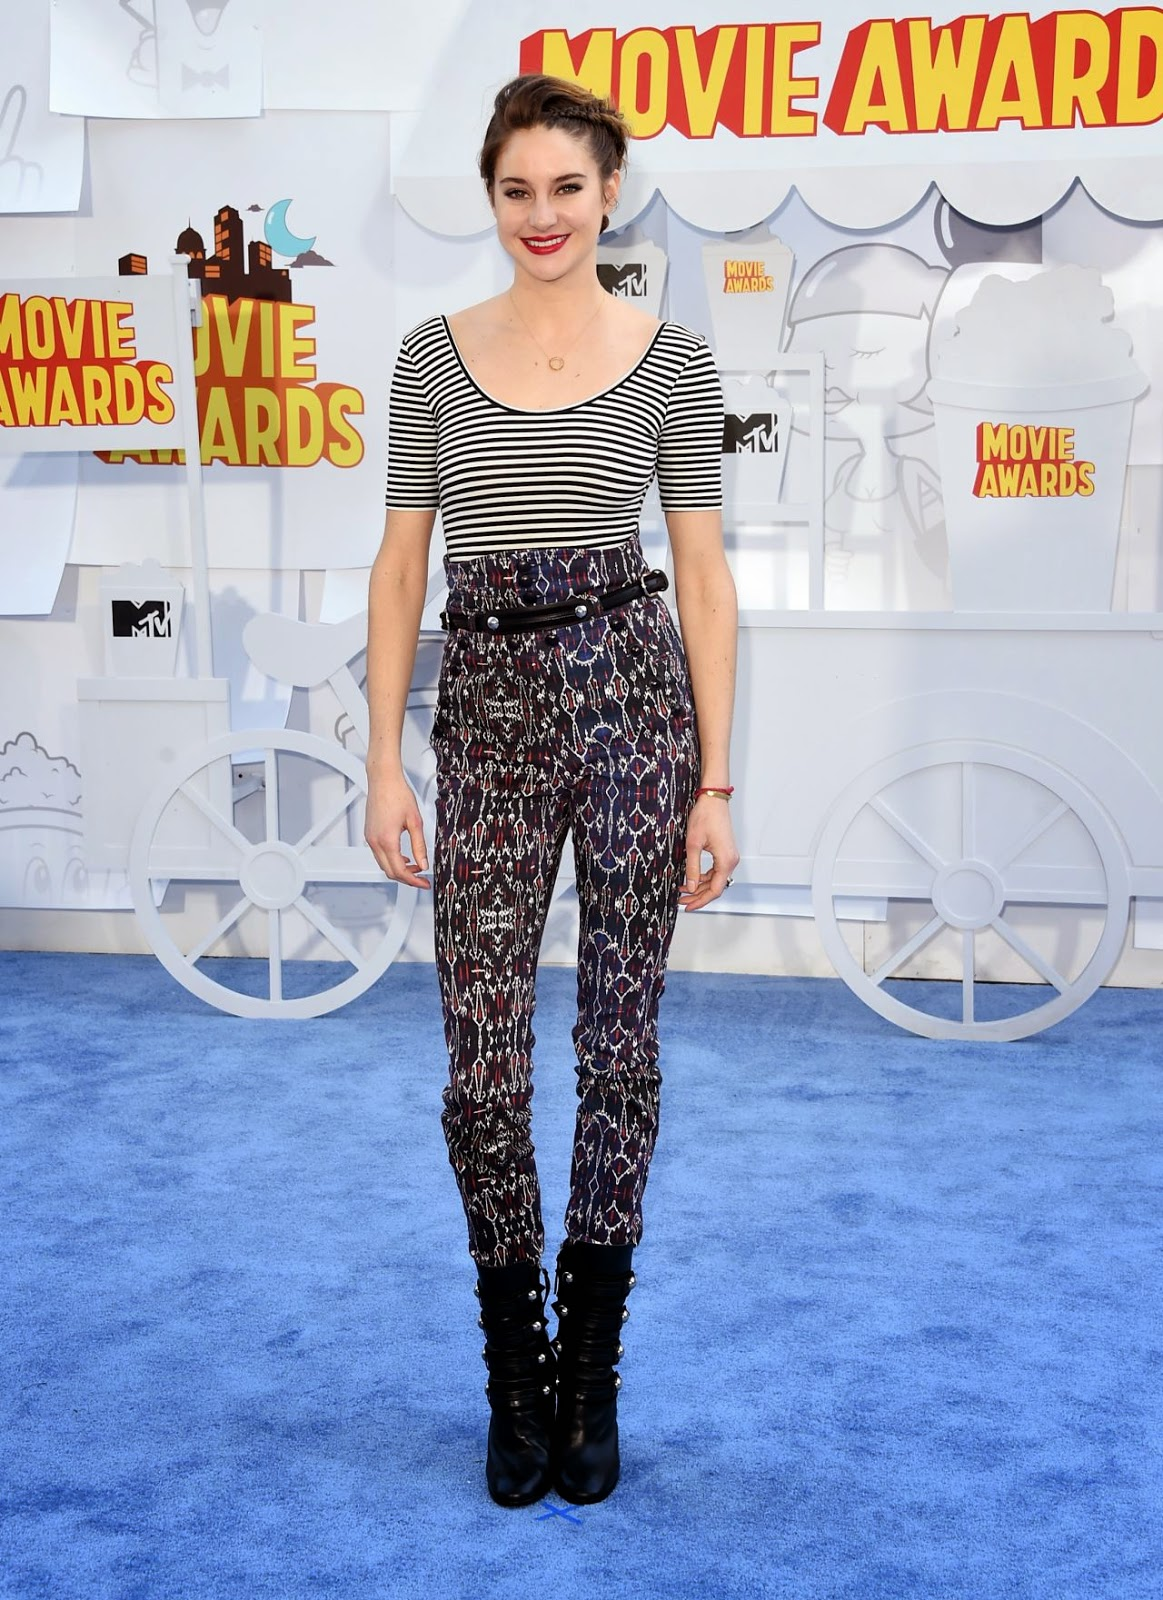 Shailene Woodley is edgy in Isabel Marant at the 2015 MTV Movie Awards